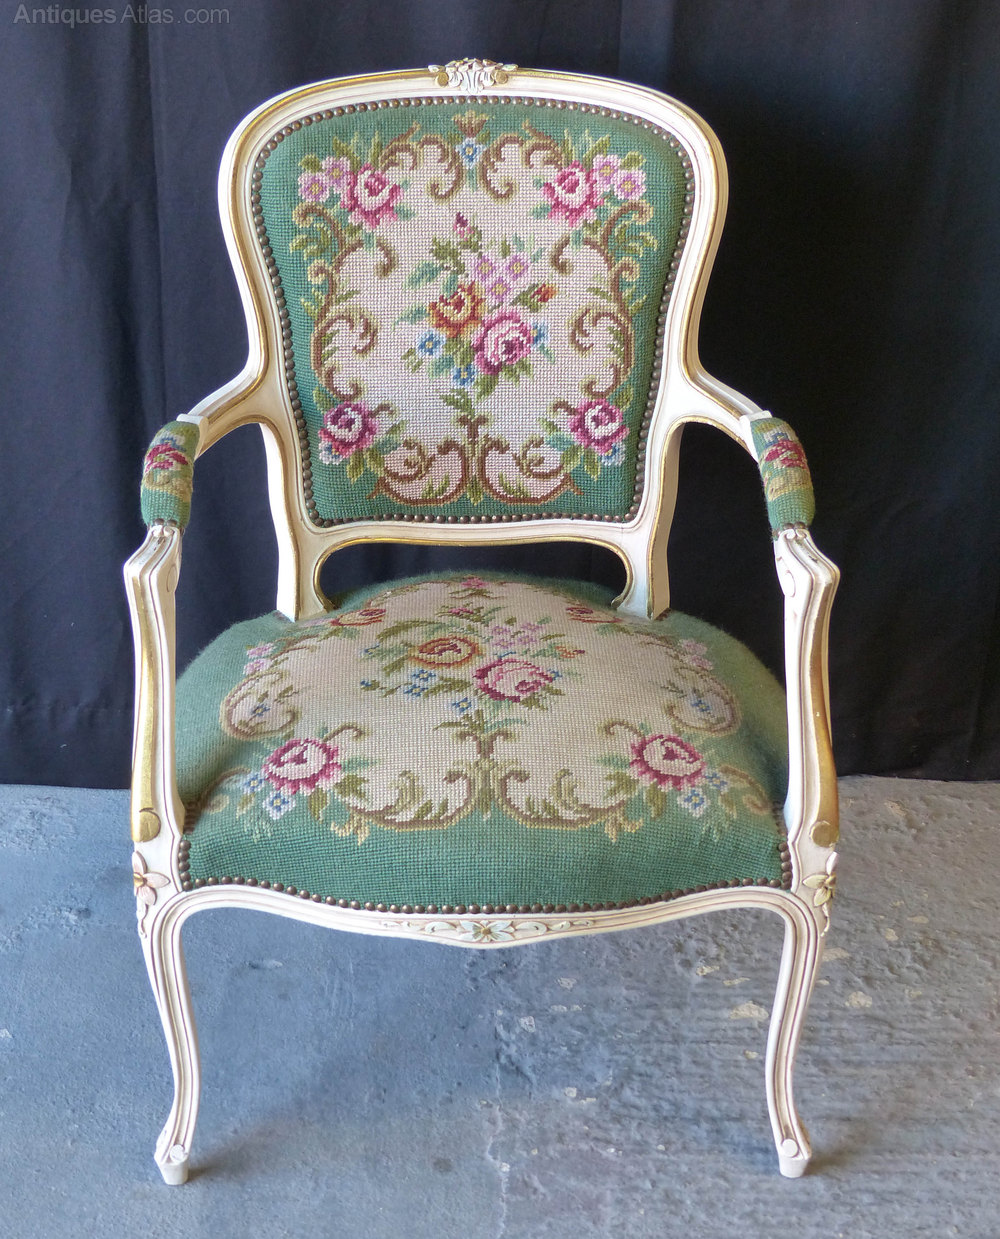 French Needlepoint Chair Antique Armchairs ...